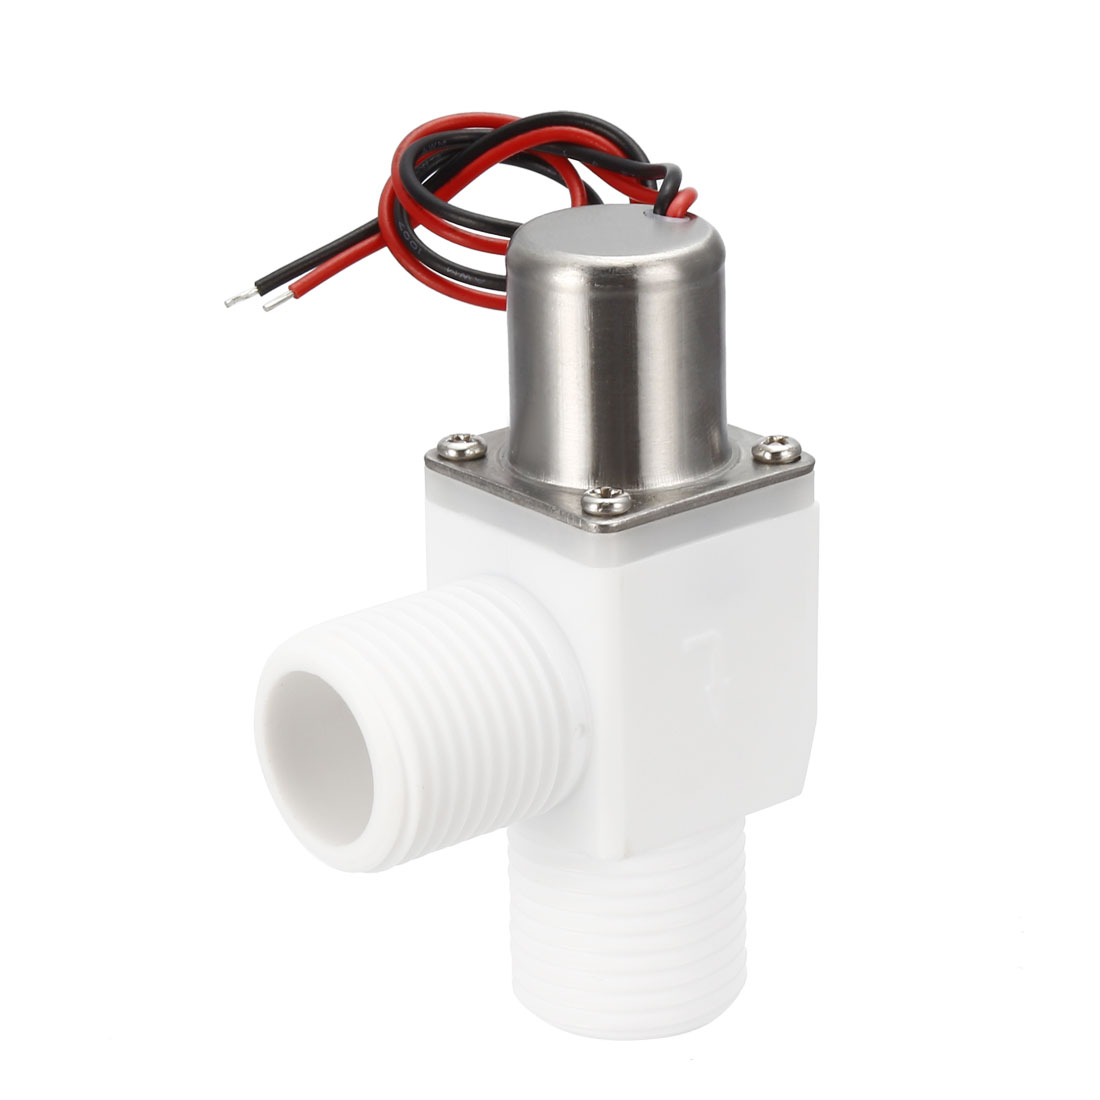 Pulse Solenoid Valve G1/2 DC3.6V Vertical Male Thread Valves with Filter